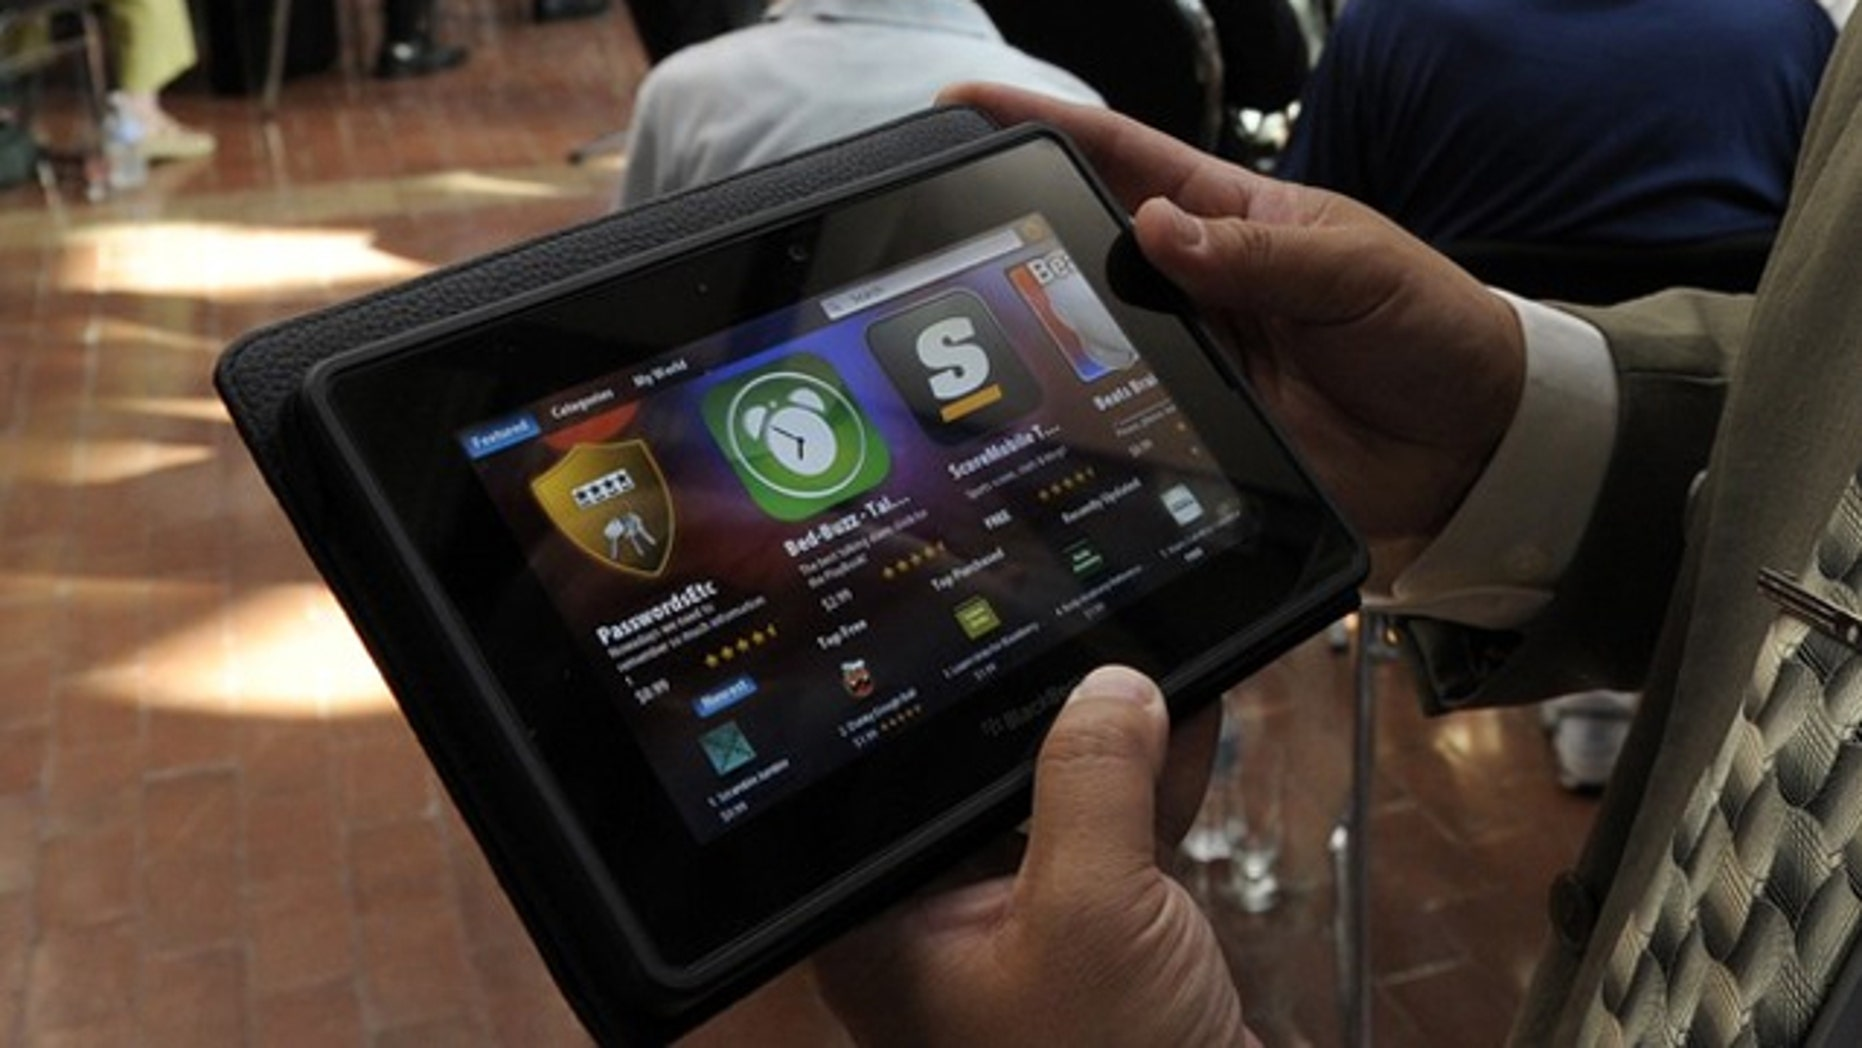 Is this the beginning of the end for BlackBerry's Playbook?